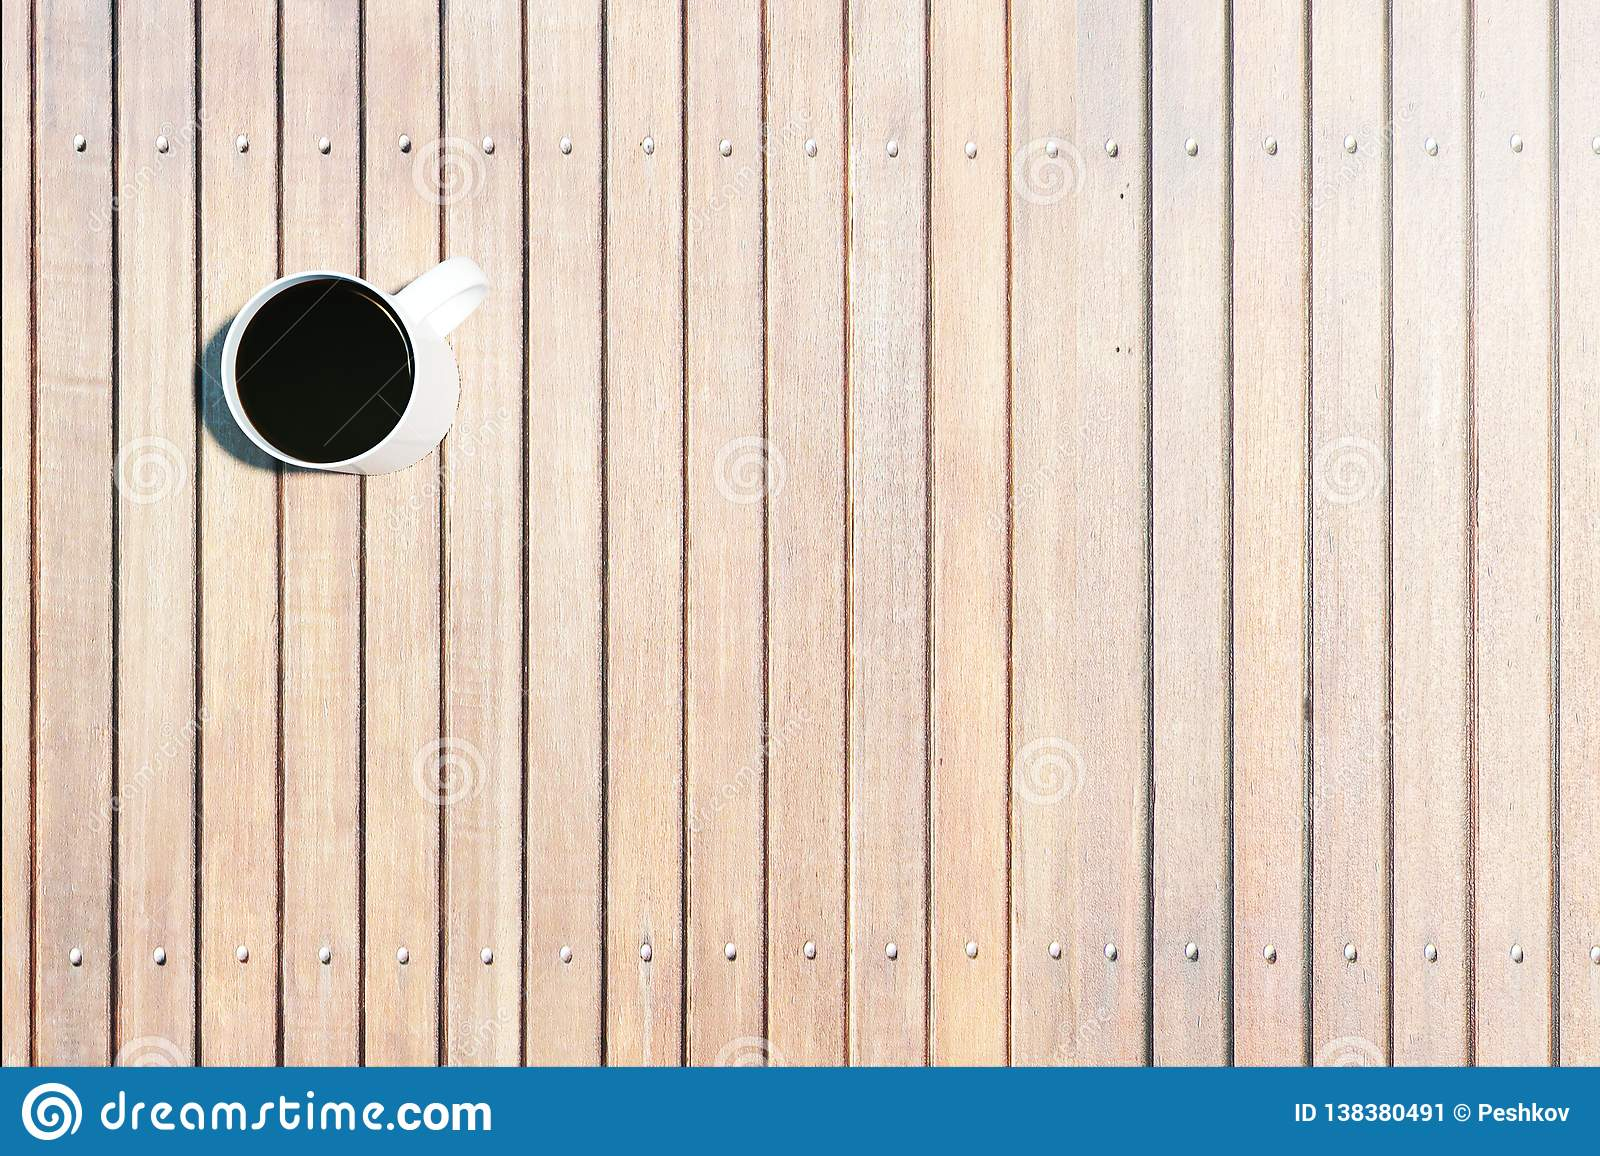 Stupendous Wooden Desktop With Coffee Stock Image Image Of Clean Interior Design Ideas Helimdqseriescom